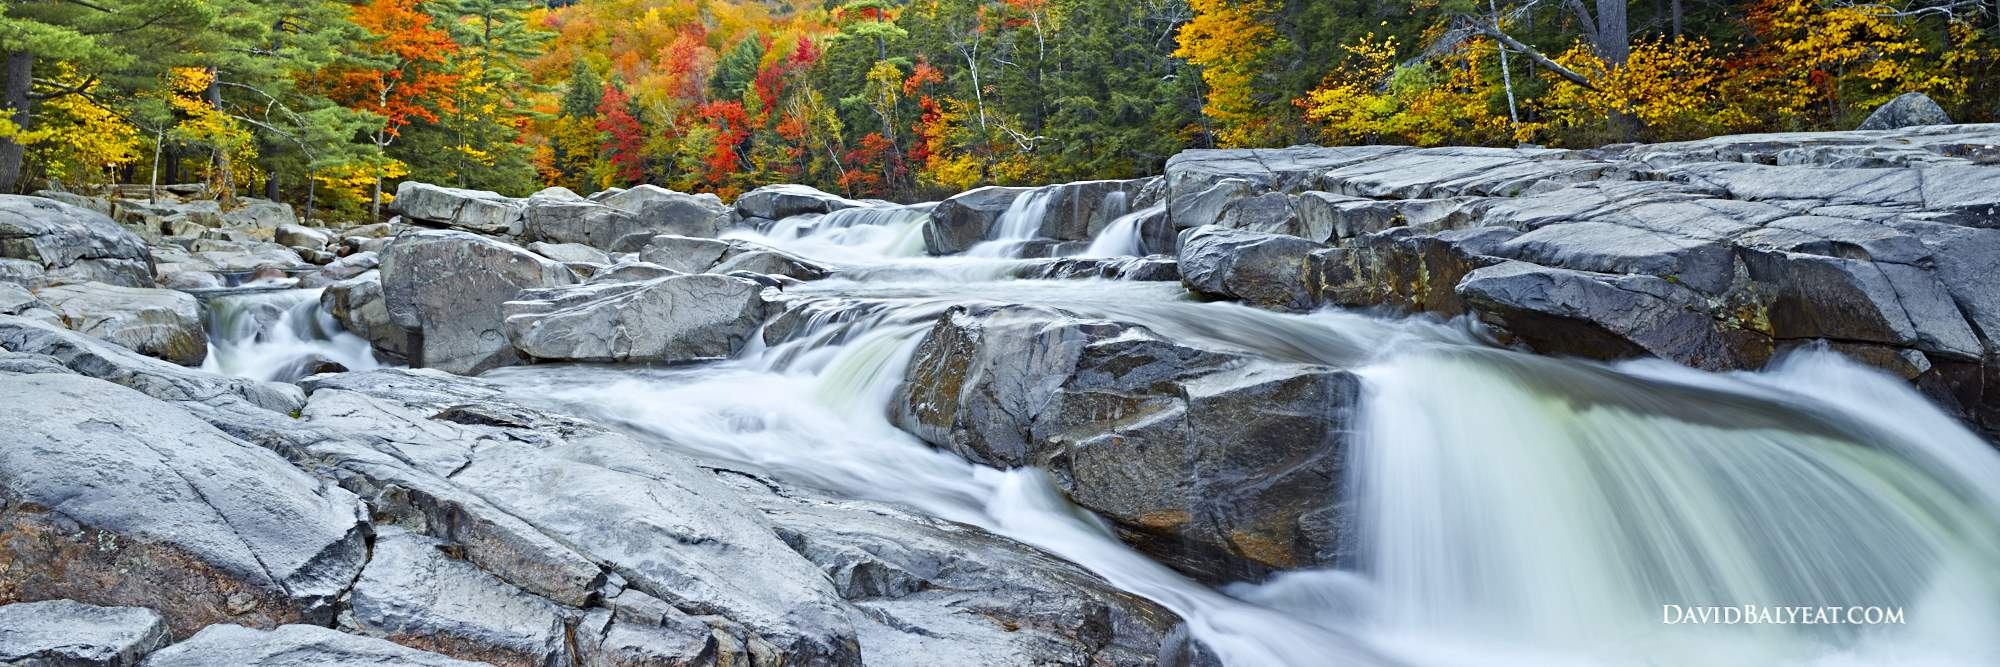 Swift River falls New Hampshire panoramic autumn fall foliage high definition HD photography